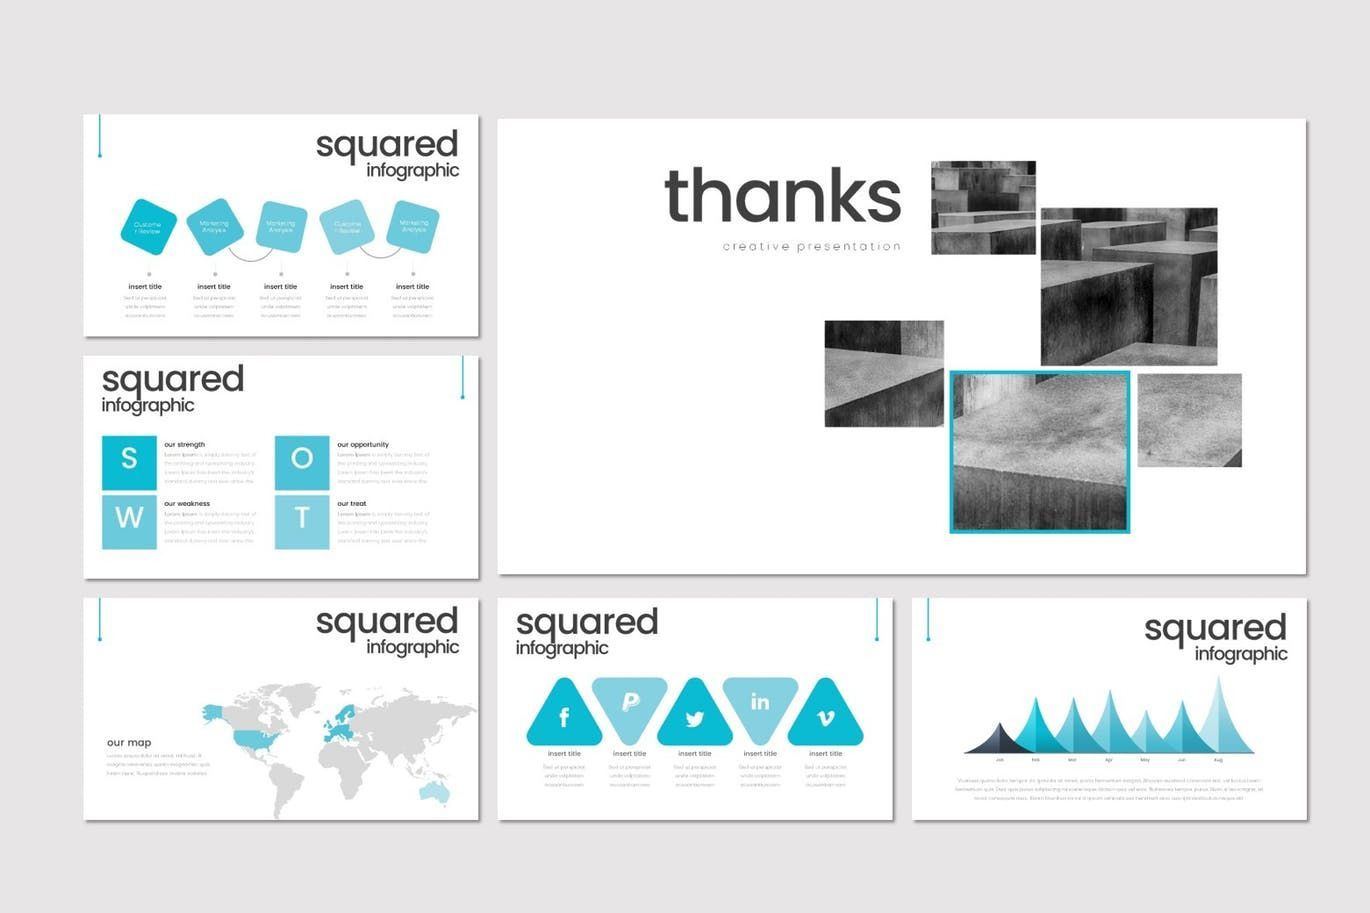 Squared - PowerPoint Template, Slide 5, 08291, Presentation Templates — PoweredTemplate.com